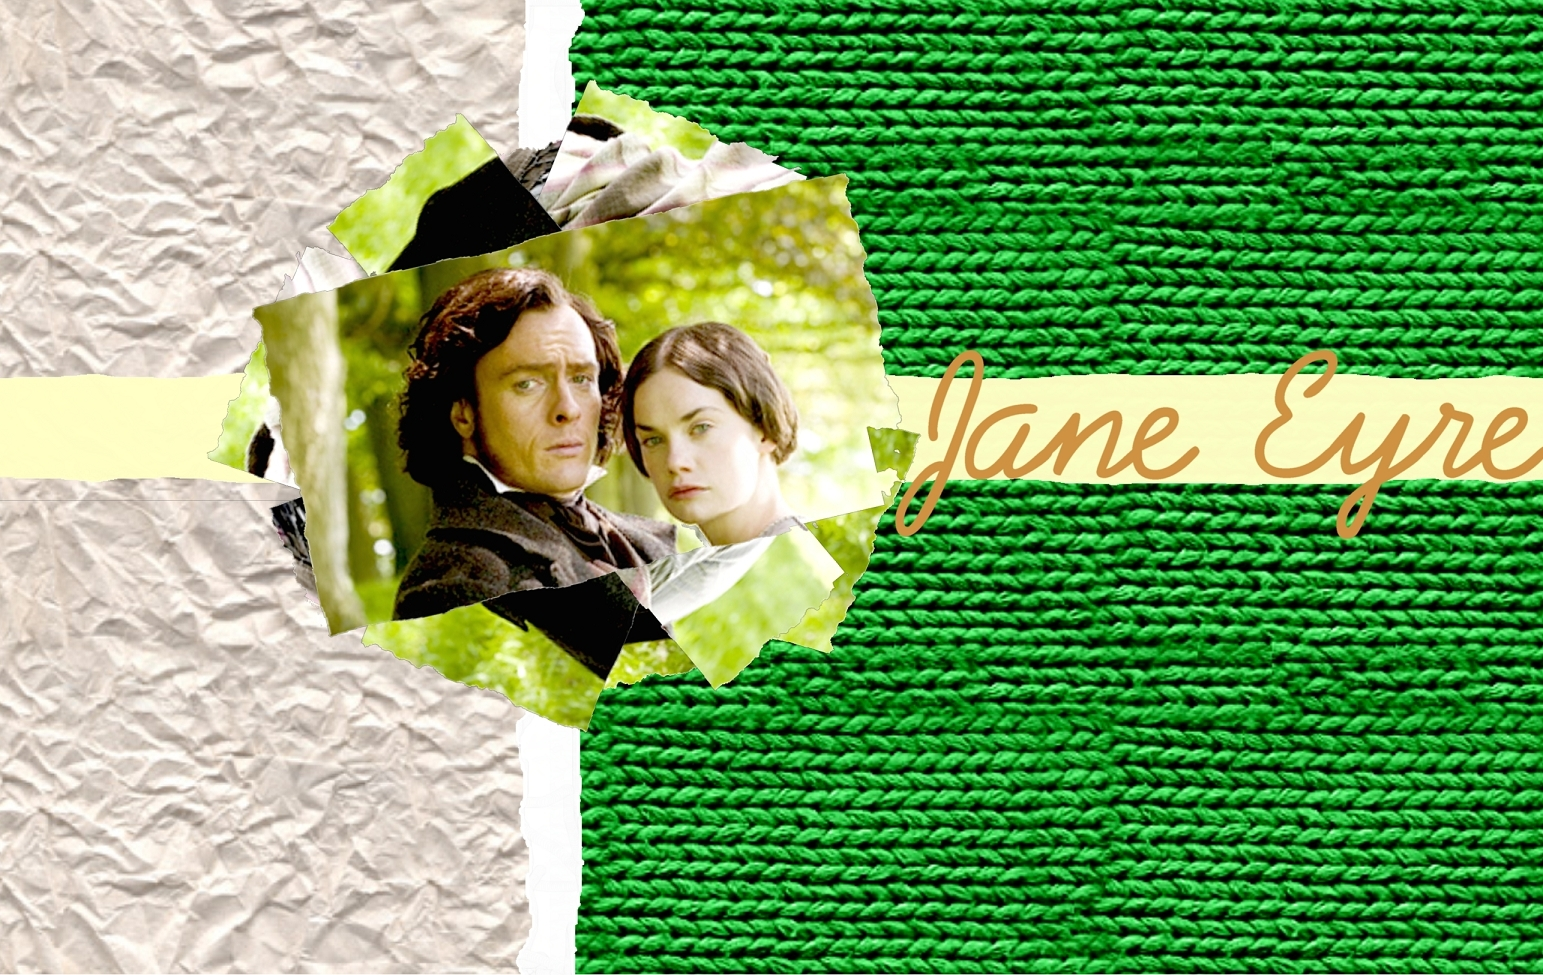 Jane Eyre দেওয়ালপত্র featuring Toby Stephens and Ruth Wilson